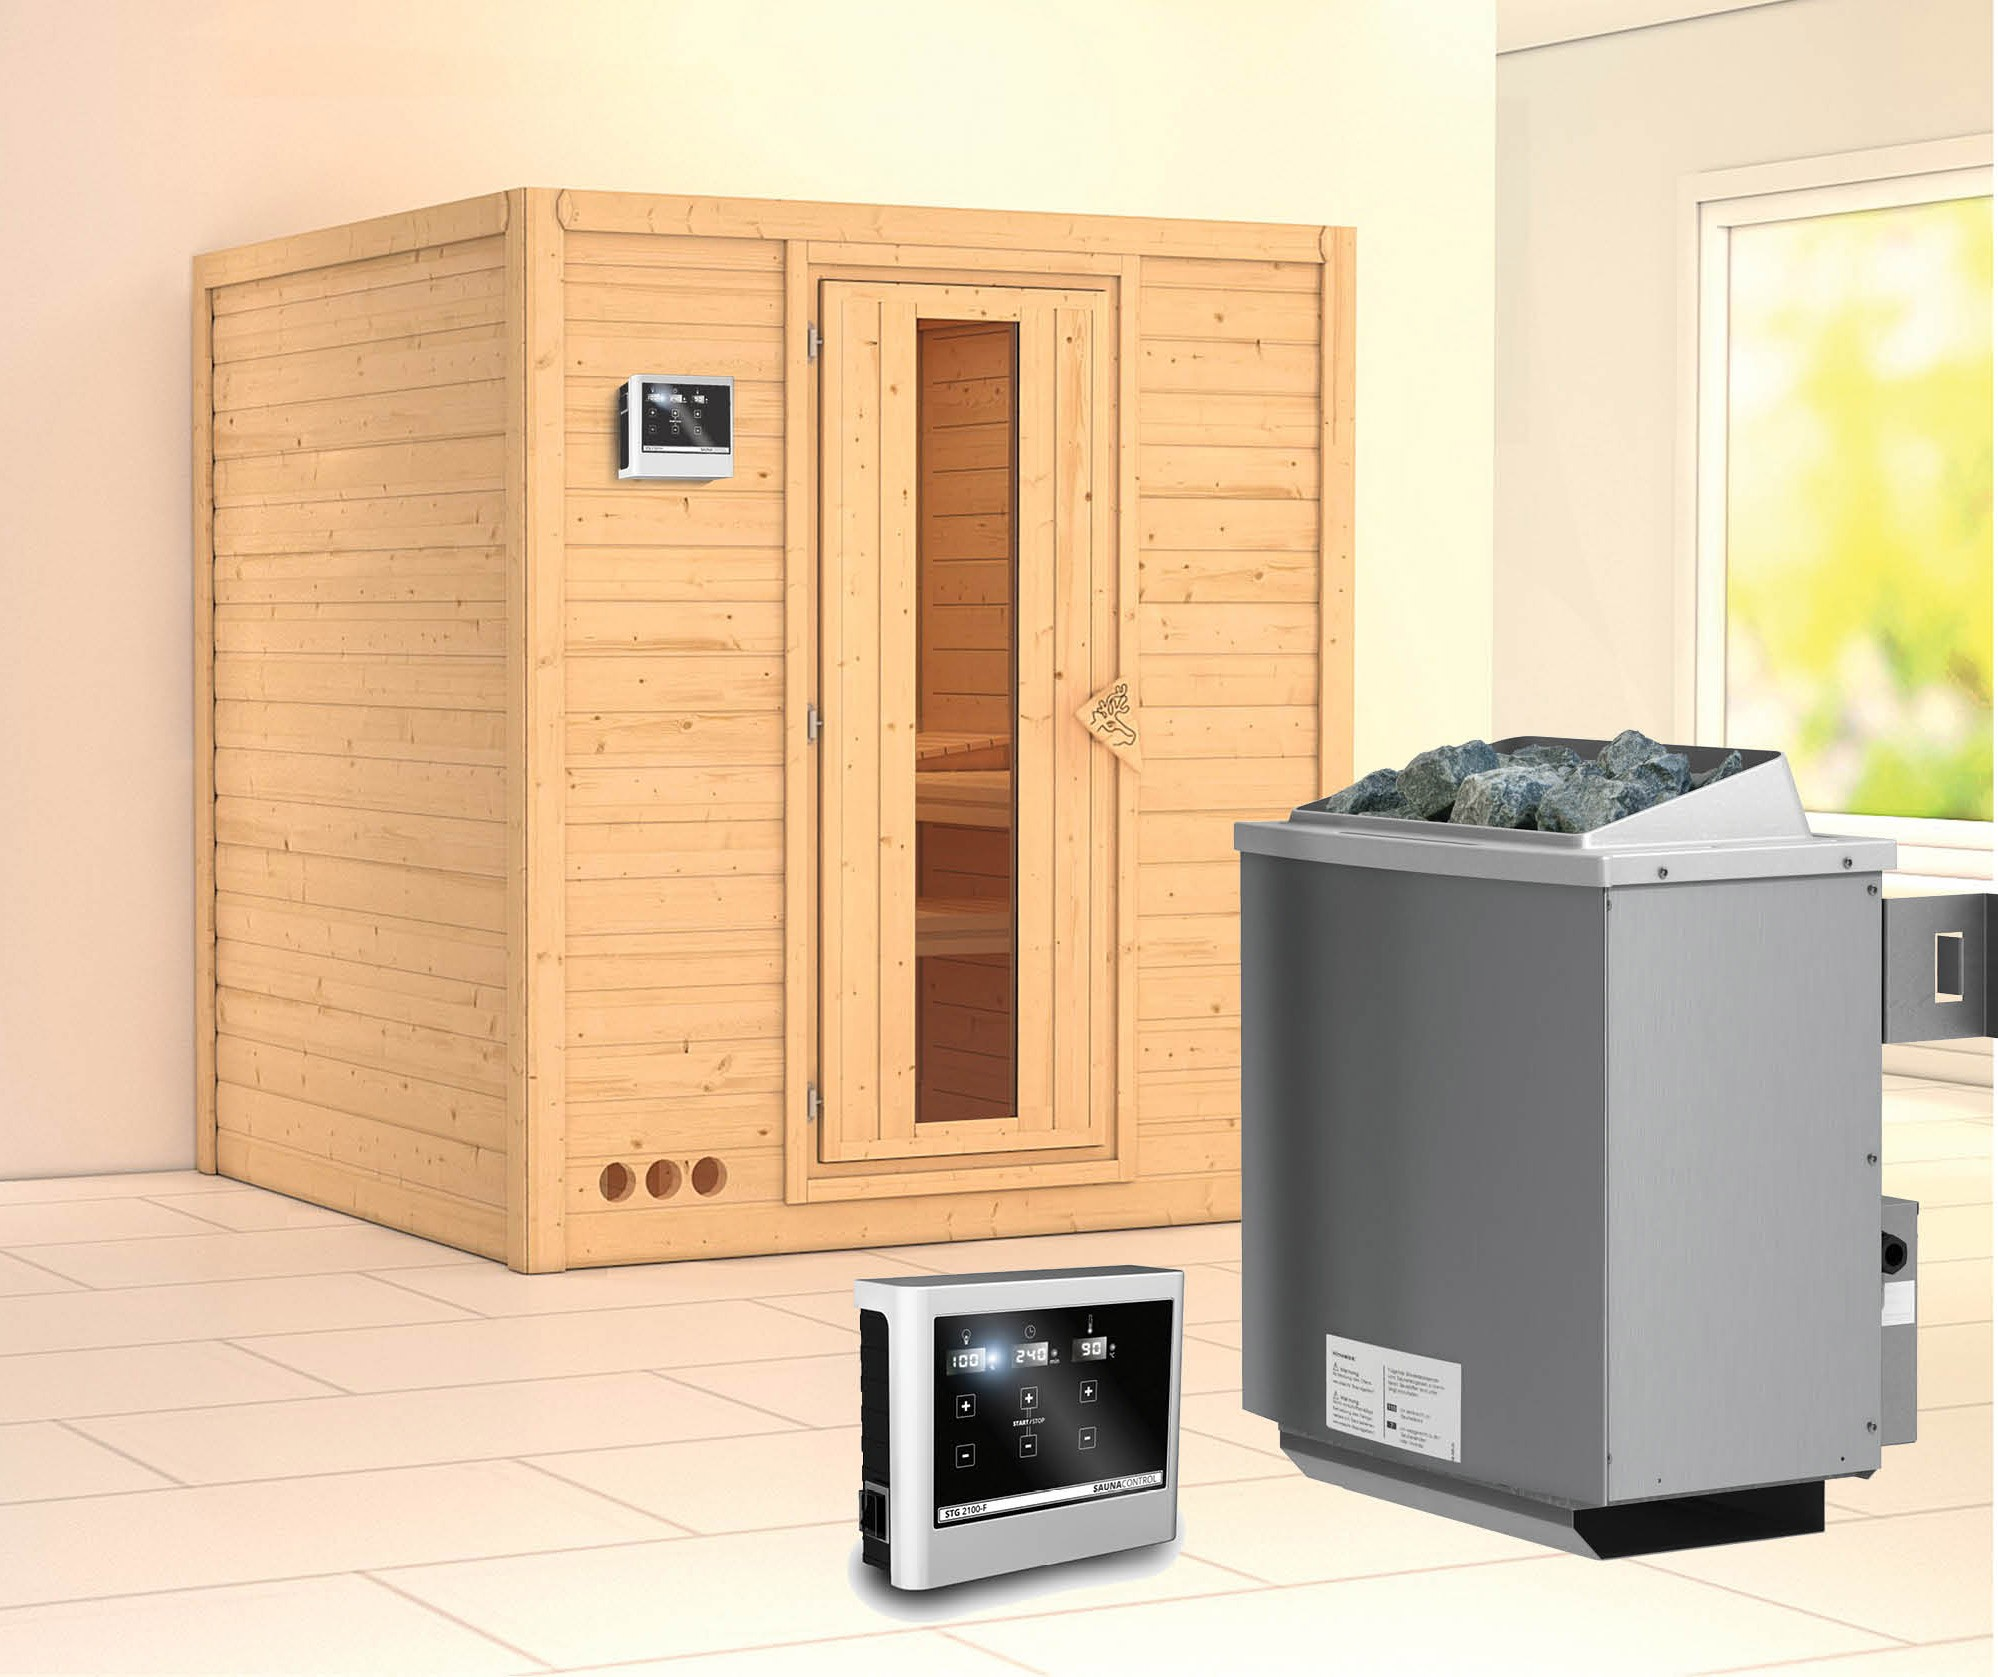 karibu sauna mojave 40mm mit ofen 9kw extern holzt r bei. Black Bedroom Furniture Sets. Home Design Ideas